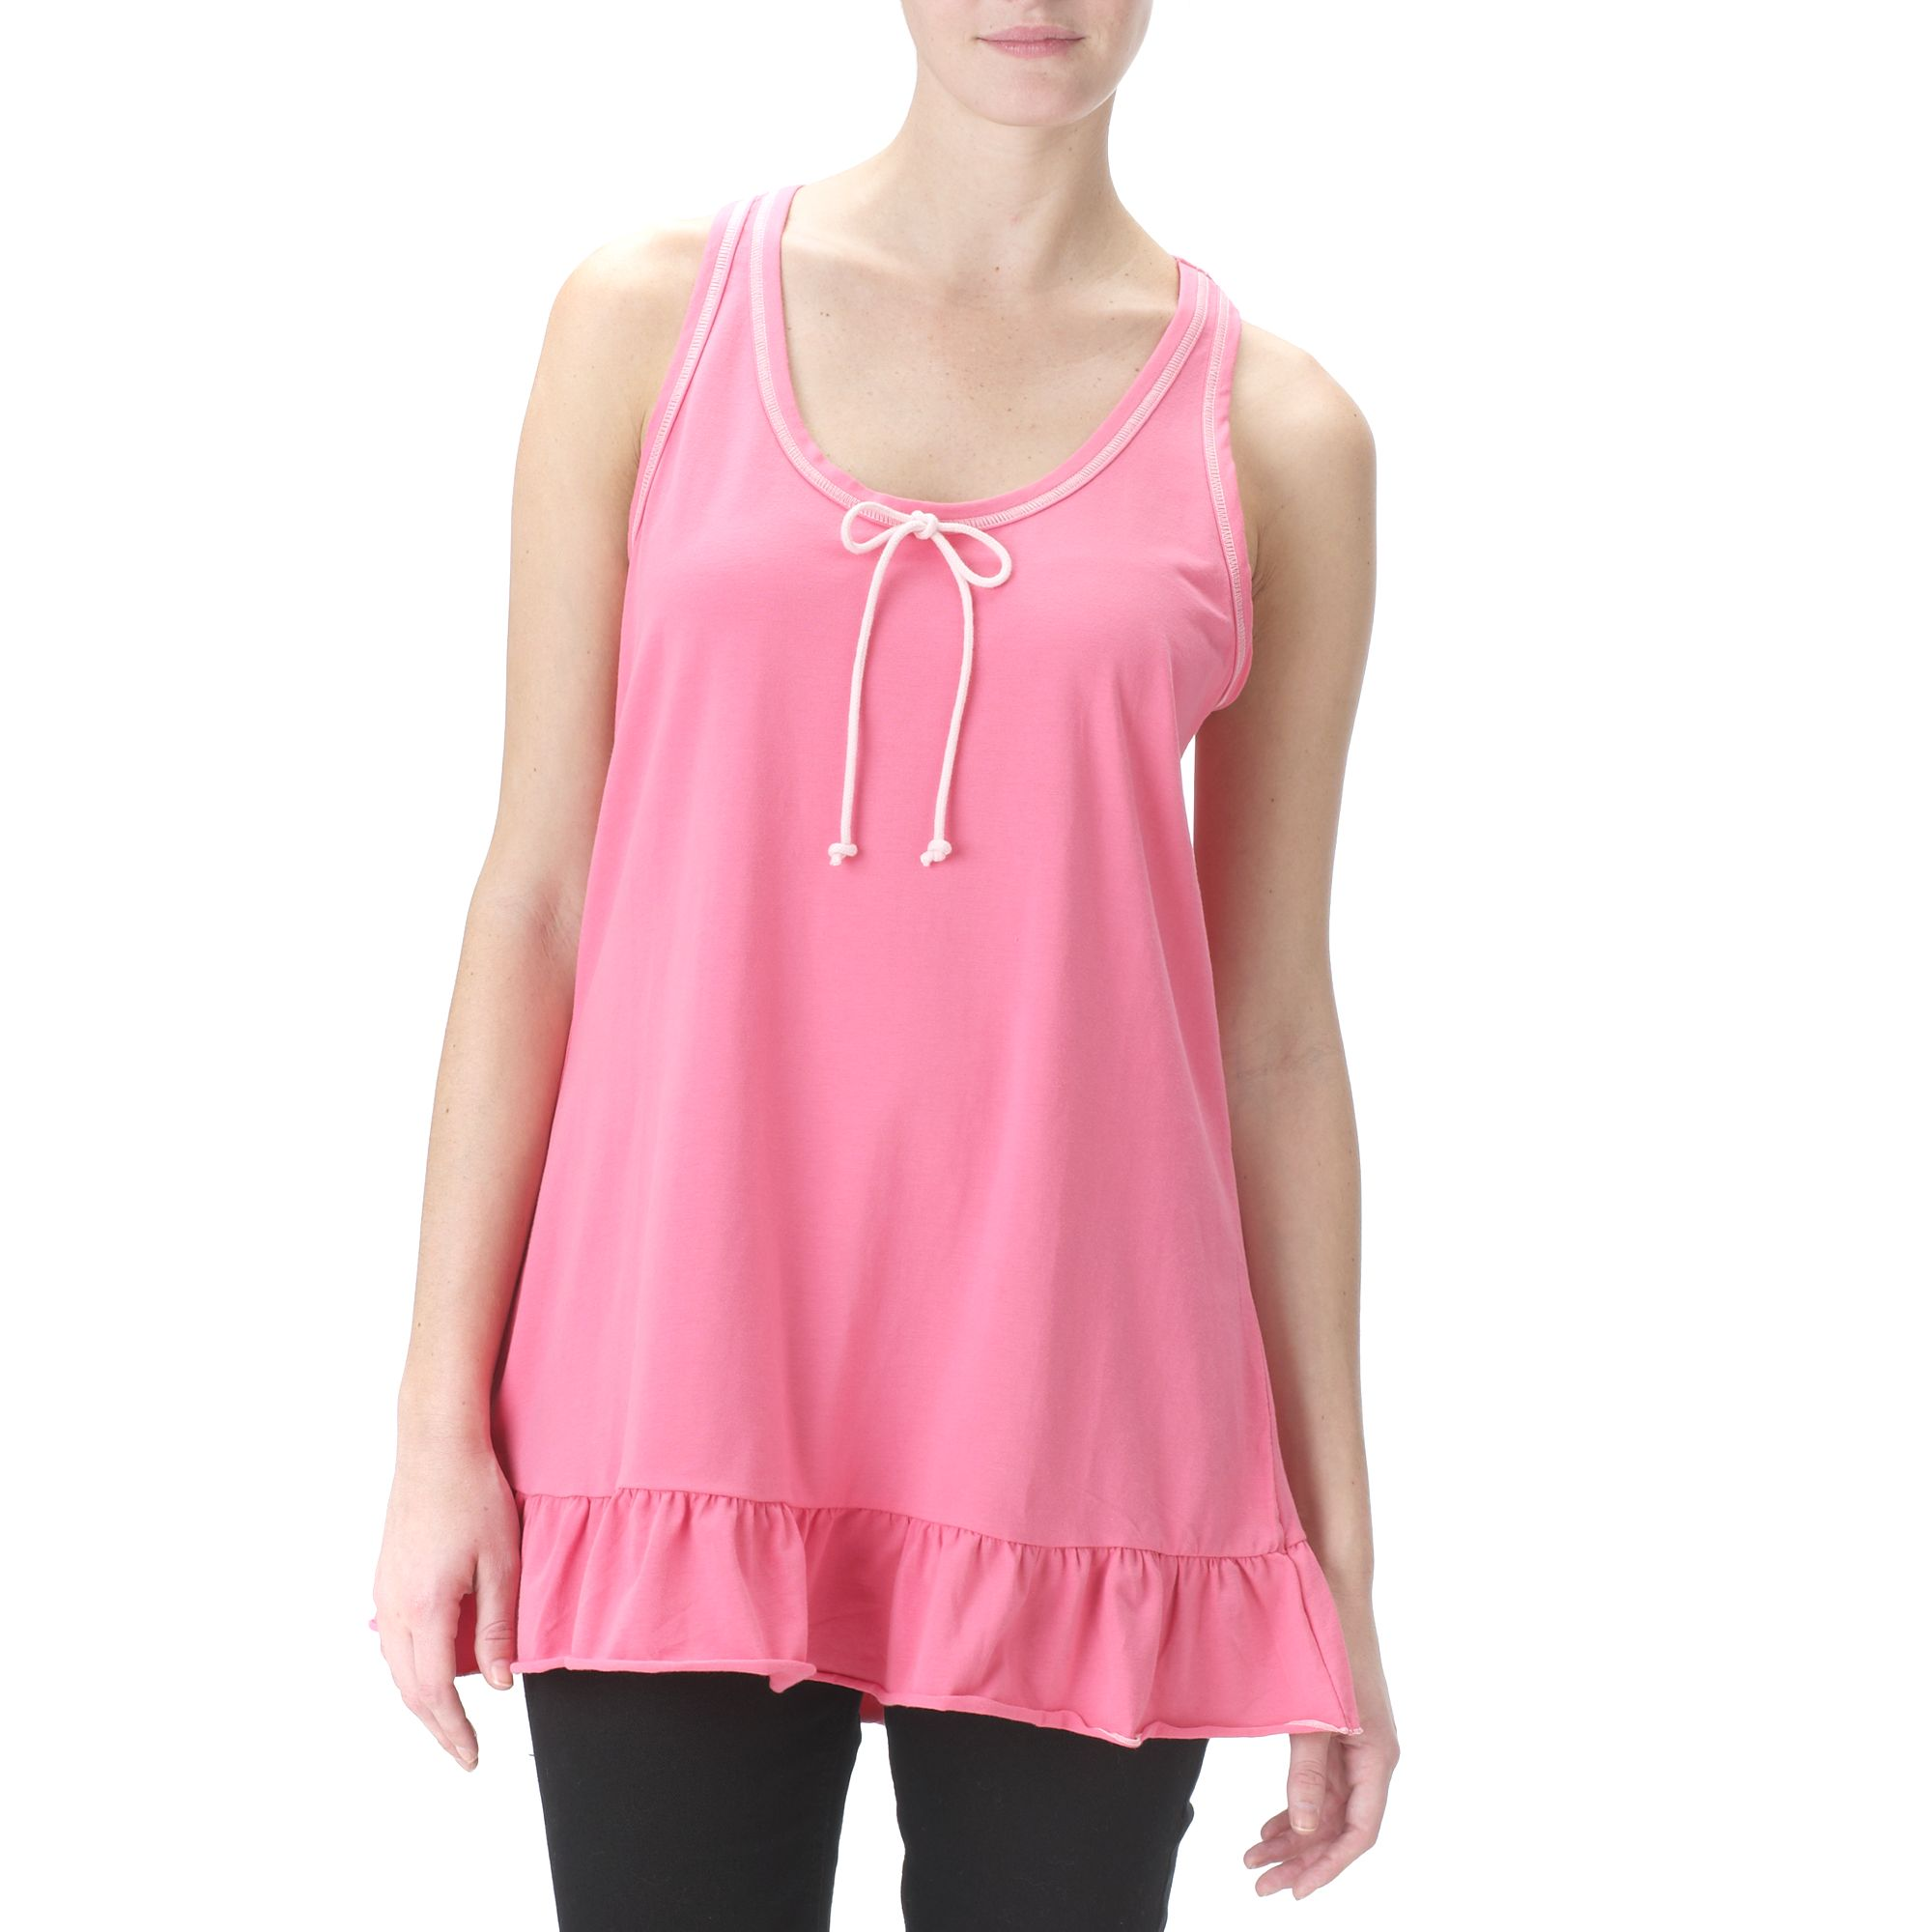 Therapy Frill Me Chemise - Pink 10,10,16,16,8,8 product image